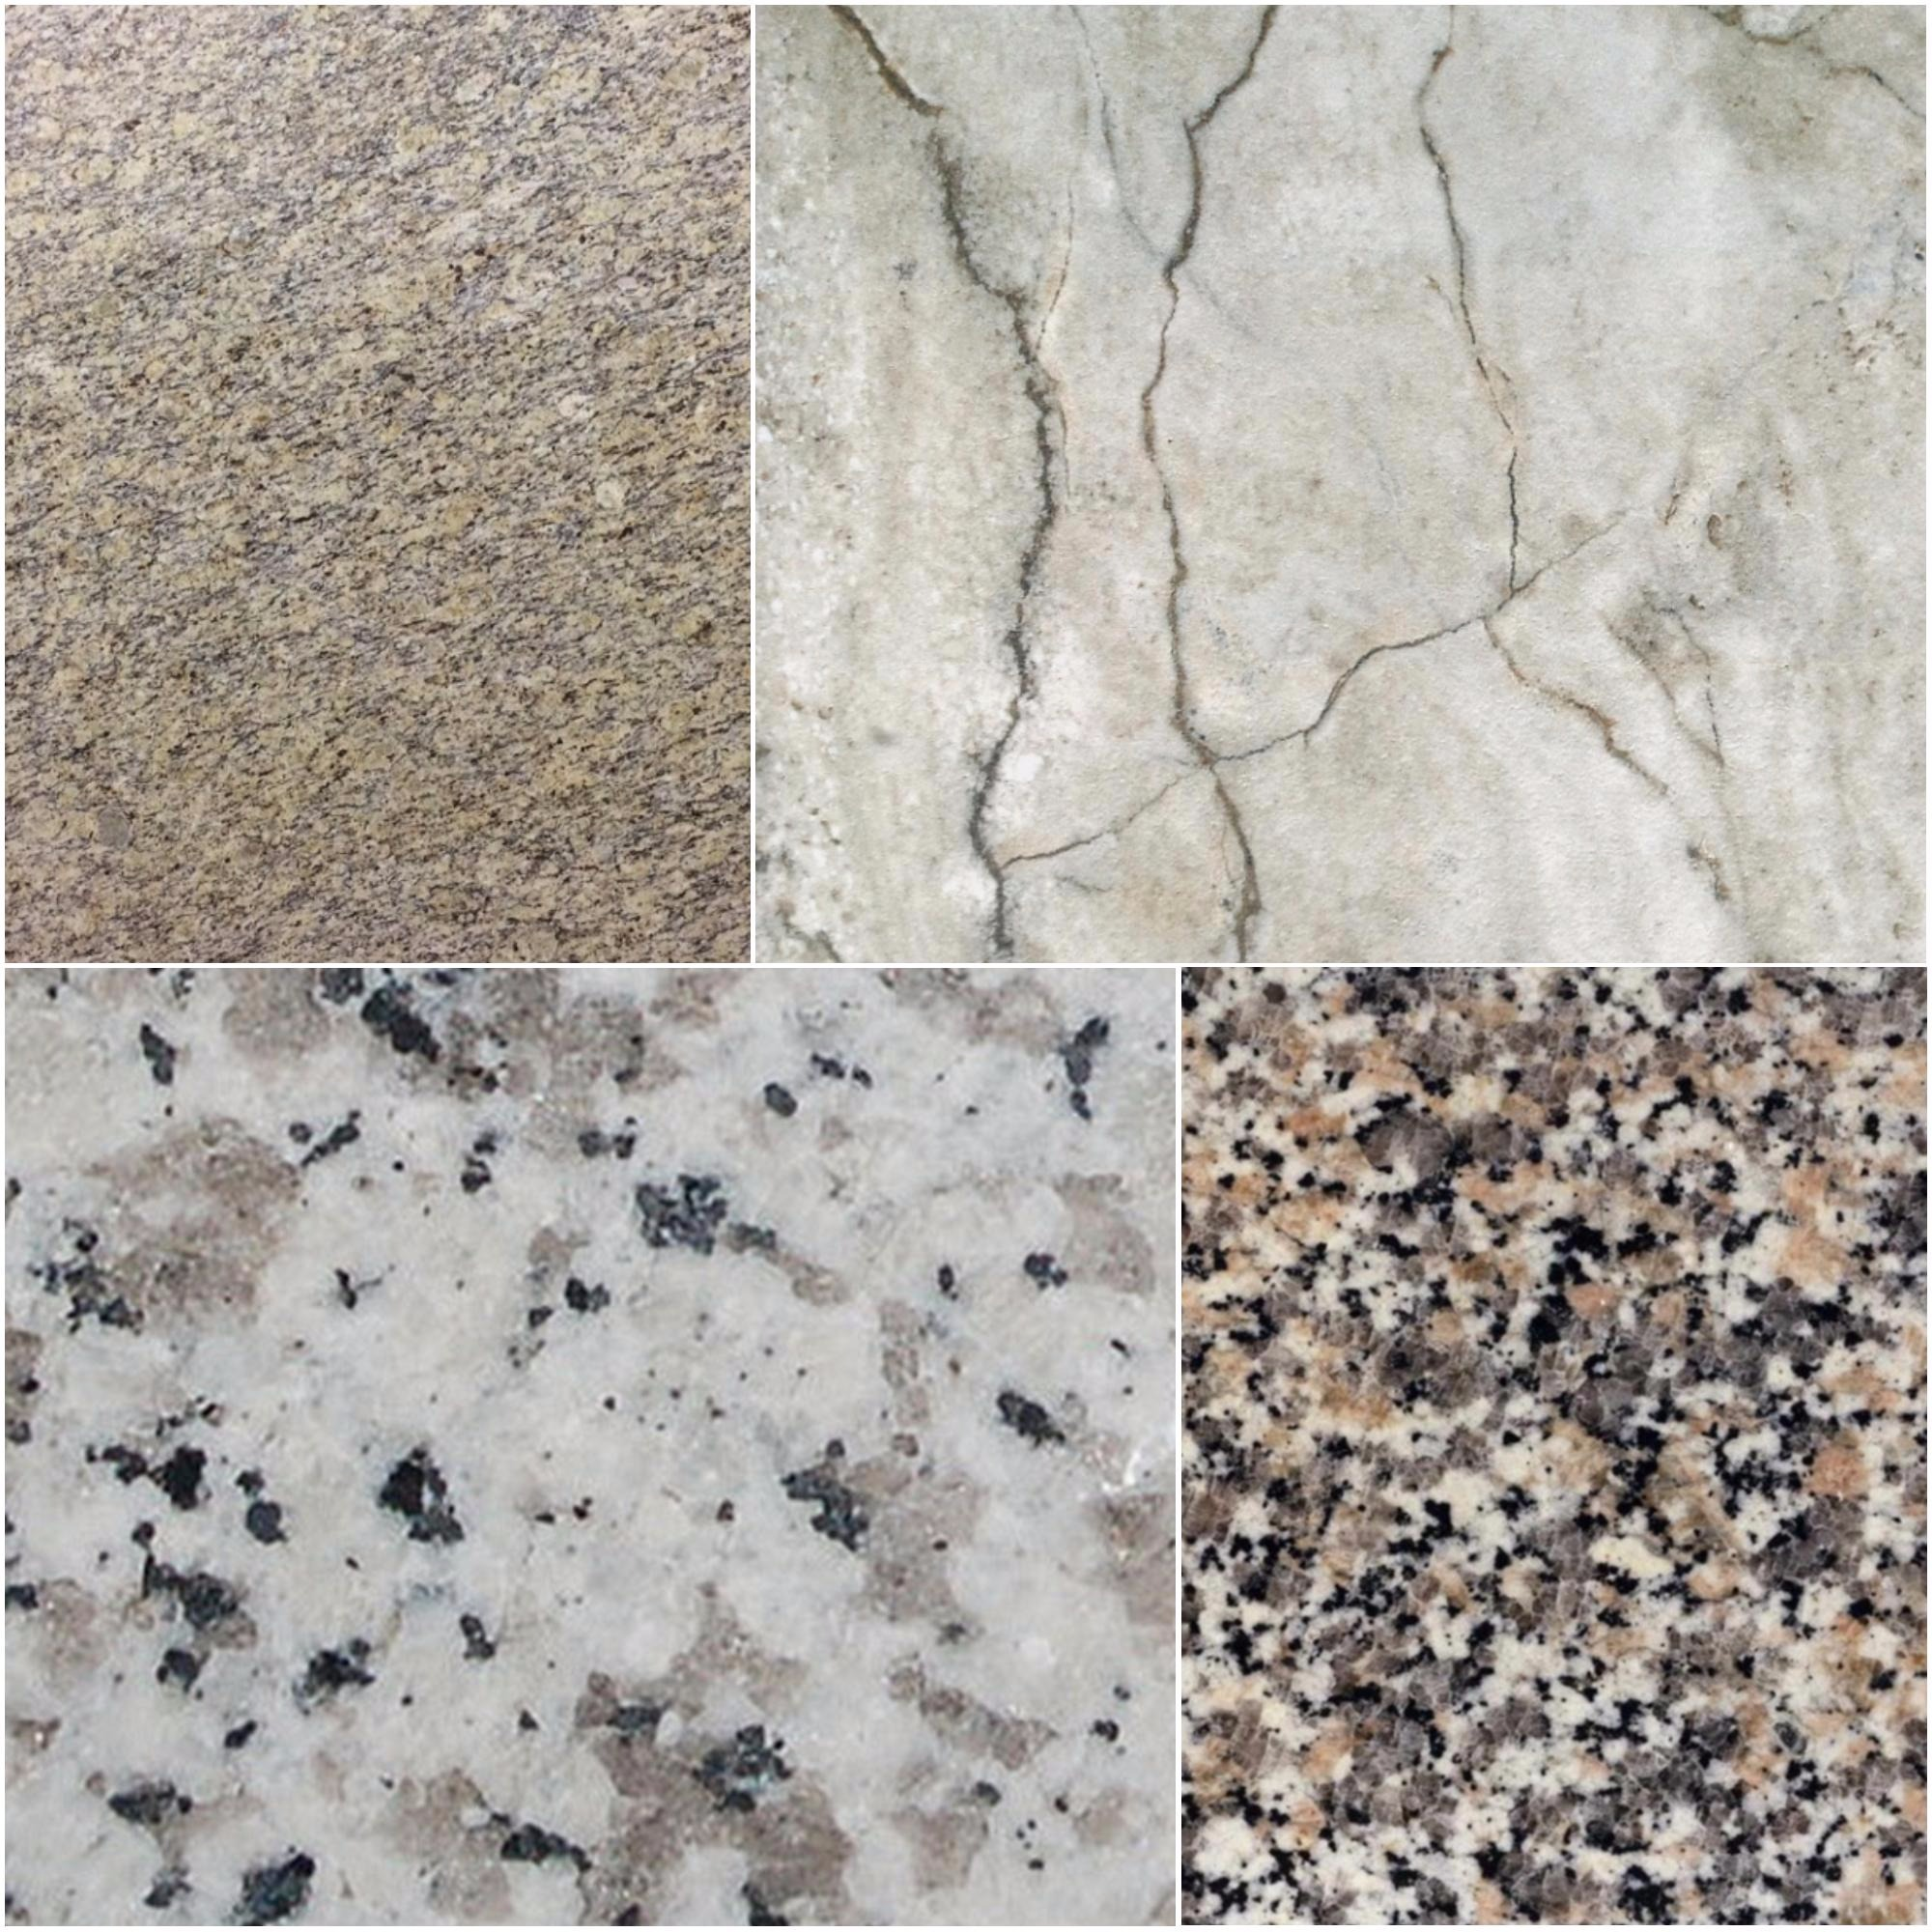 What Are The Different Grades Of Granite?